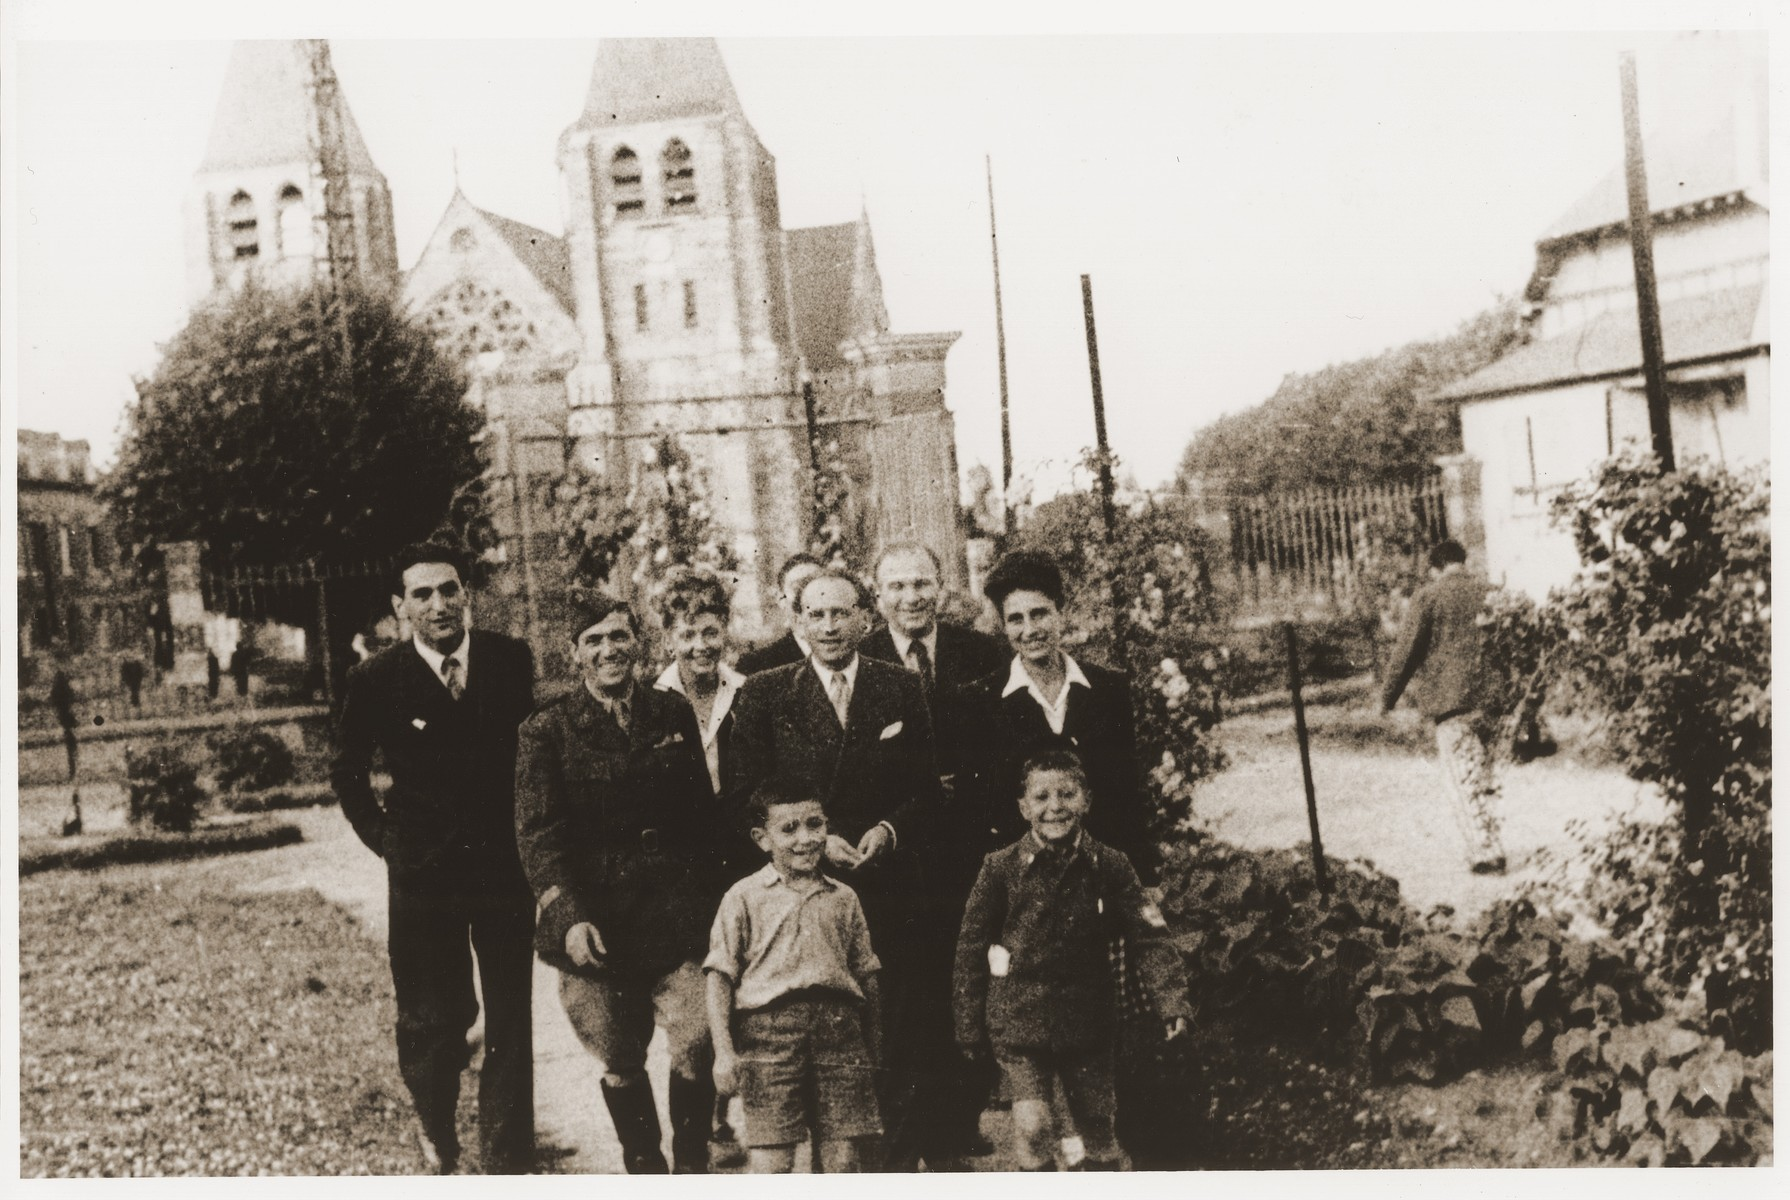 Representatives of the OSE (Oeuvre de Secours aux Enfants) pose with two members of the Buchenwald children's transport in the town square of Ecouis.    Pictured in the front from left to right are David Perelmutter and Yisrael Meir (Lulek) Lau. The man in uniform is Colonel Rozen.  Gaby (Nini) Wolff is on the far right.